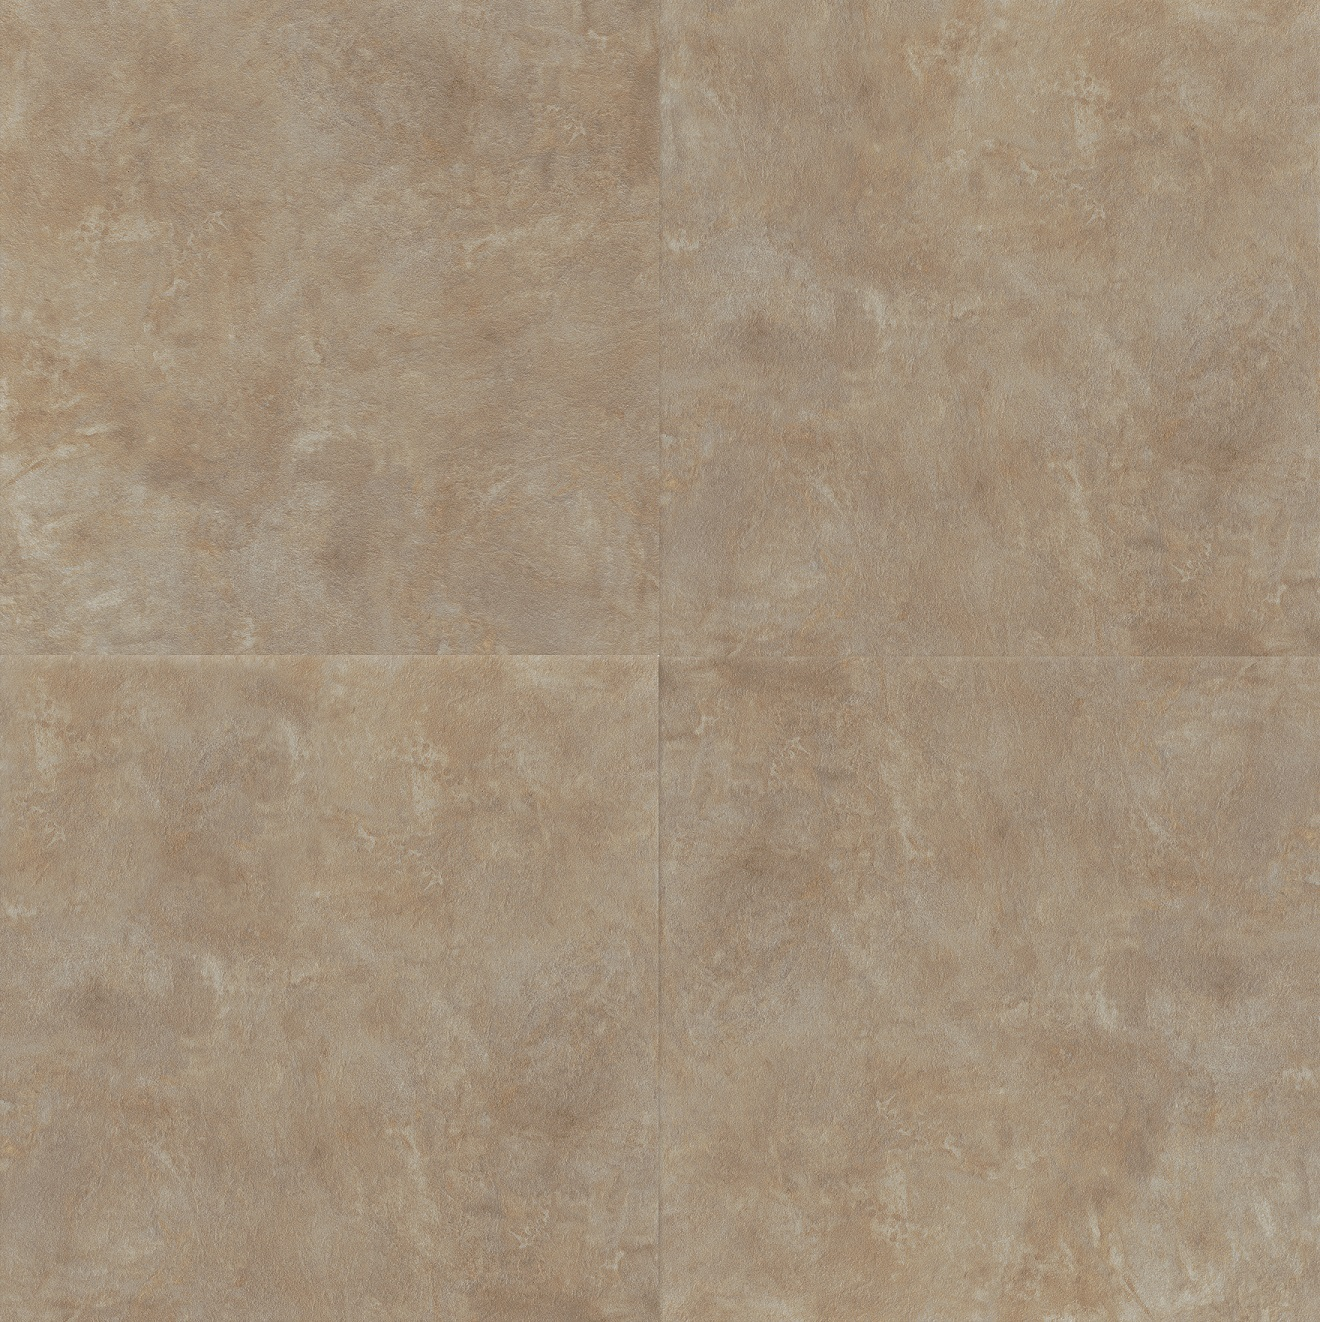 Armstrong parallel moss vinyl flooring 18 x 18 armj6211831 for 18 x 18 vinyl floor tiles